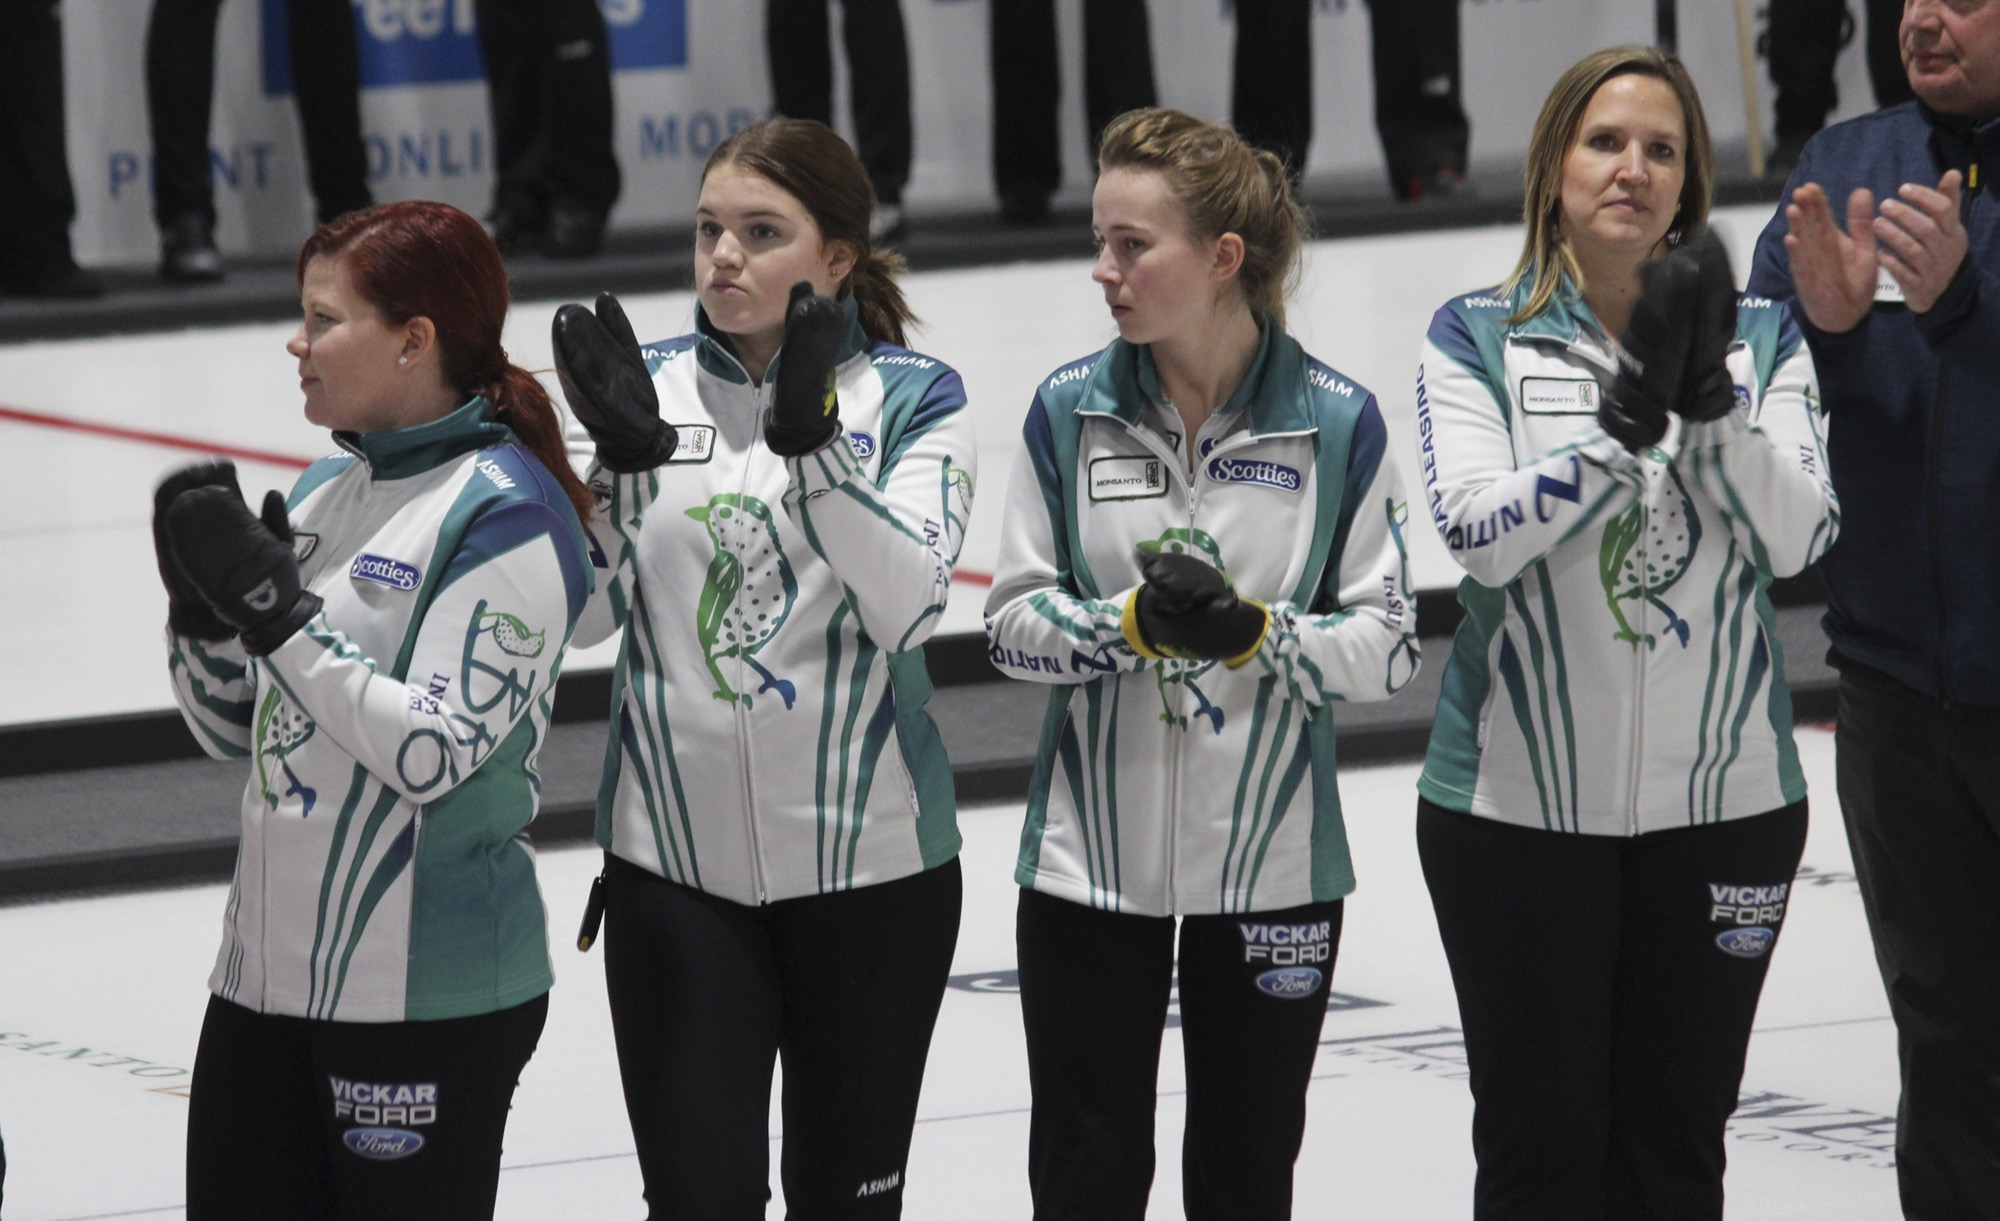 The Dauphin team of skip Lisa Hale-Menard, from left, third Meghan Walter, second Emilie Rafnson, lead Laurie Macdonell and coach Ray Baker look on/appluad during the opening ceremonies of the Manitoba Scotties Tournament of Hearts in Killarney on Wednesday evening.